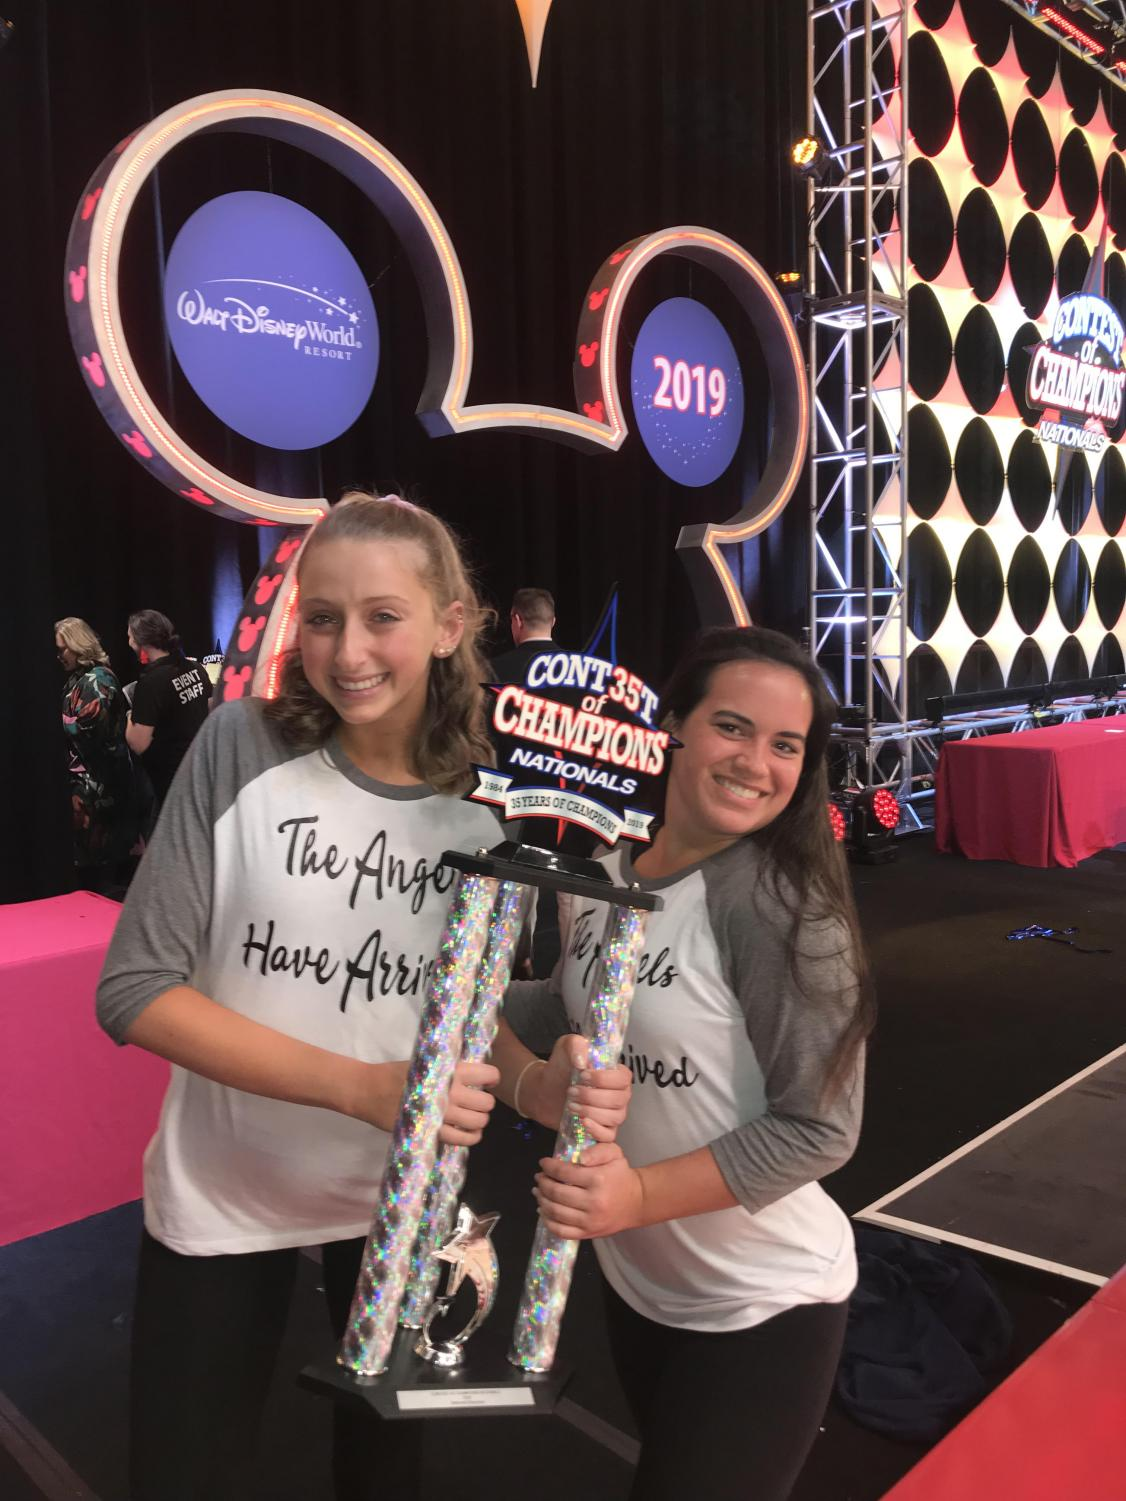 Macie Goldfarb and Kathryn Carrick celebrate winning first place at nationals